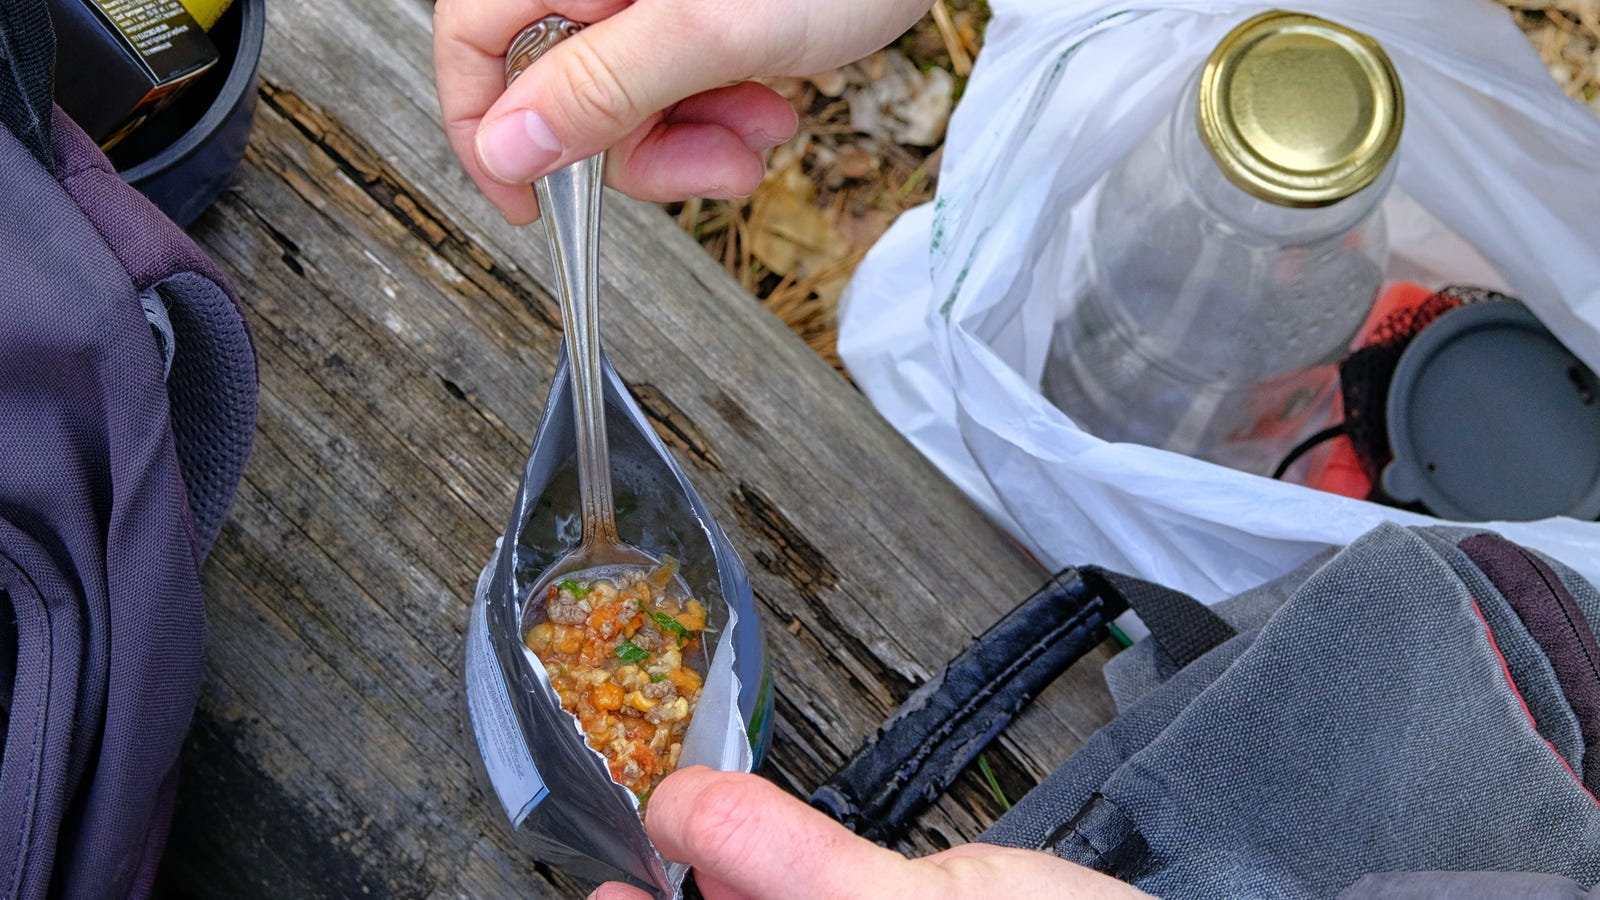 A hiker getting ready to enjoy a hot freeze dried meal while on a backpacking trip.